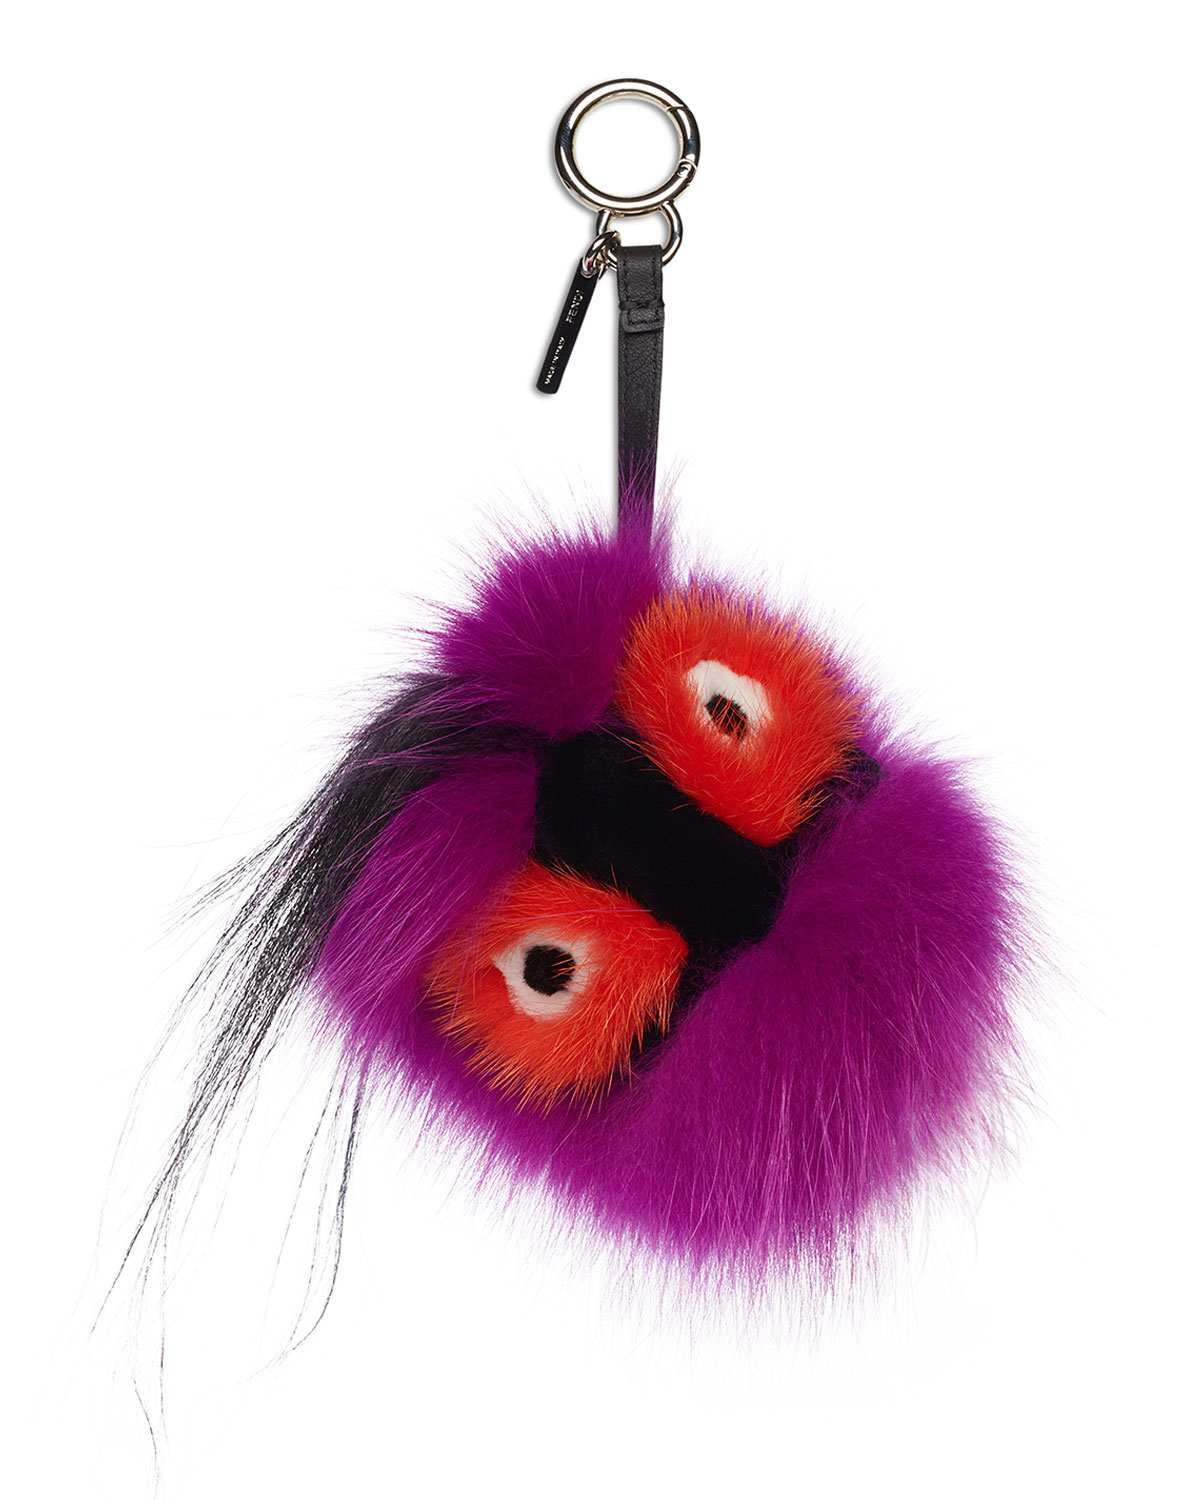 Fendi Fur Monster | Fendi Key Ring | Fendi Keychain Fur